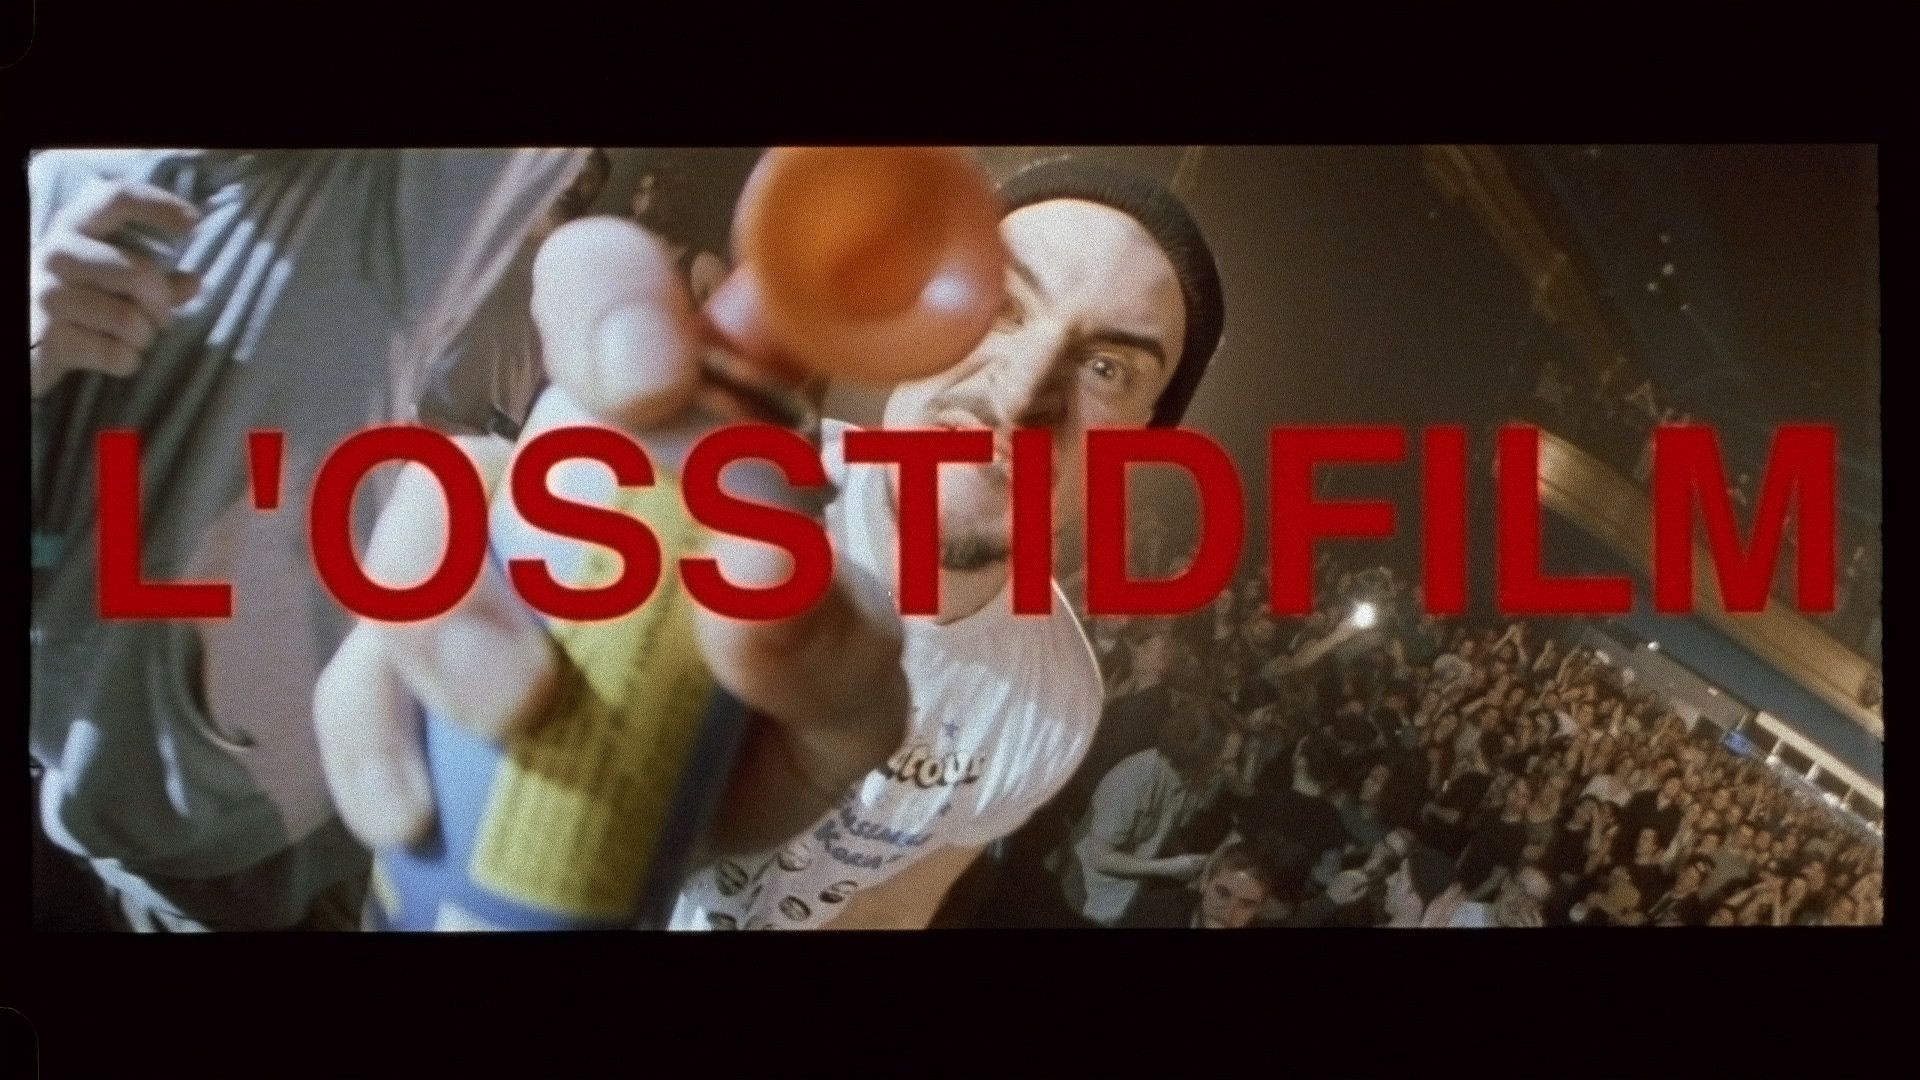 L'Osstidfilm documentary filmed by Vincent Ruel-Cote from Les Gamins about L'Osstidtour a collective of quebecois rappers including Koriass, Brown and Alaclair Ensemble having a tour around Quebec towns